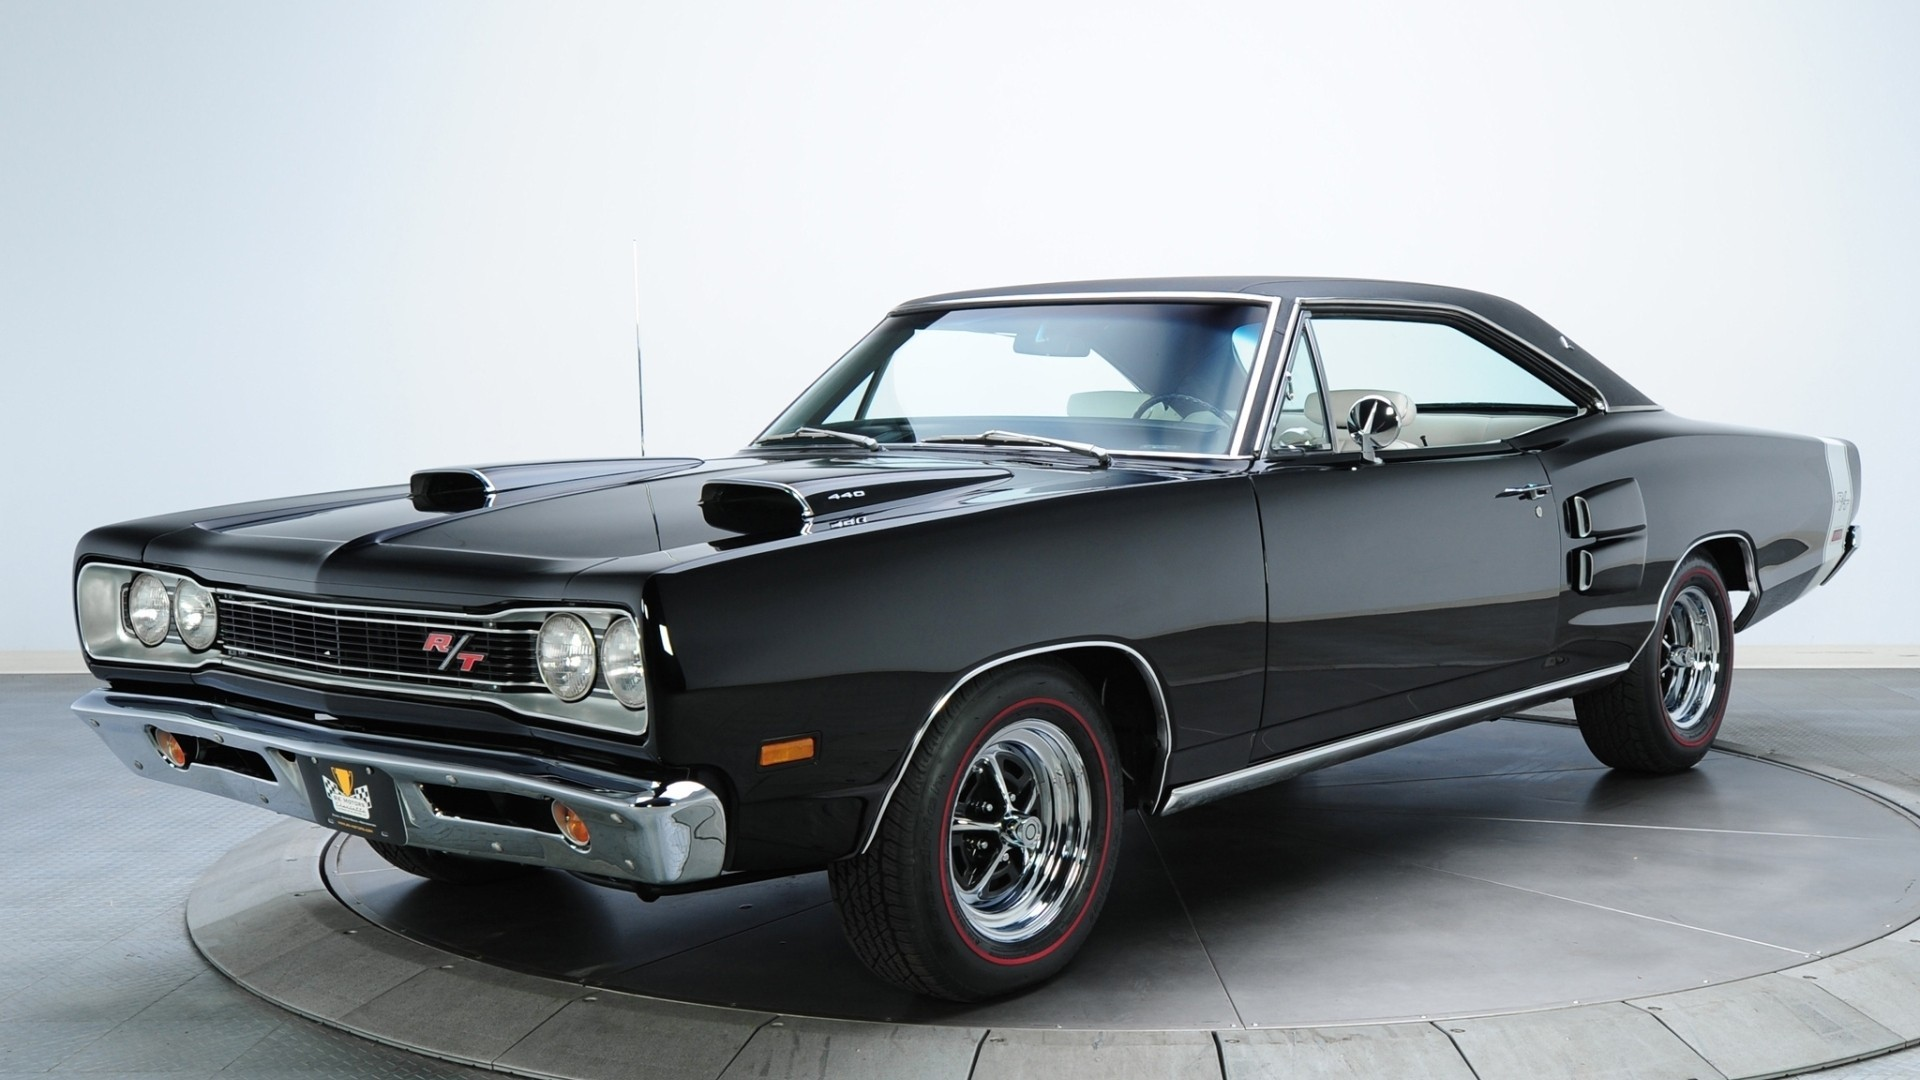 Black-Muscle-Cars-Black-classic-muscle-car-wallpaper-wpc9002938